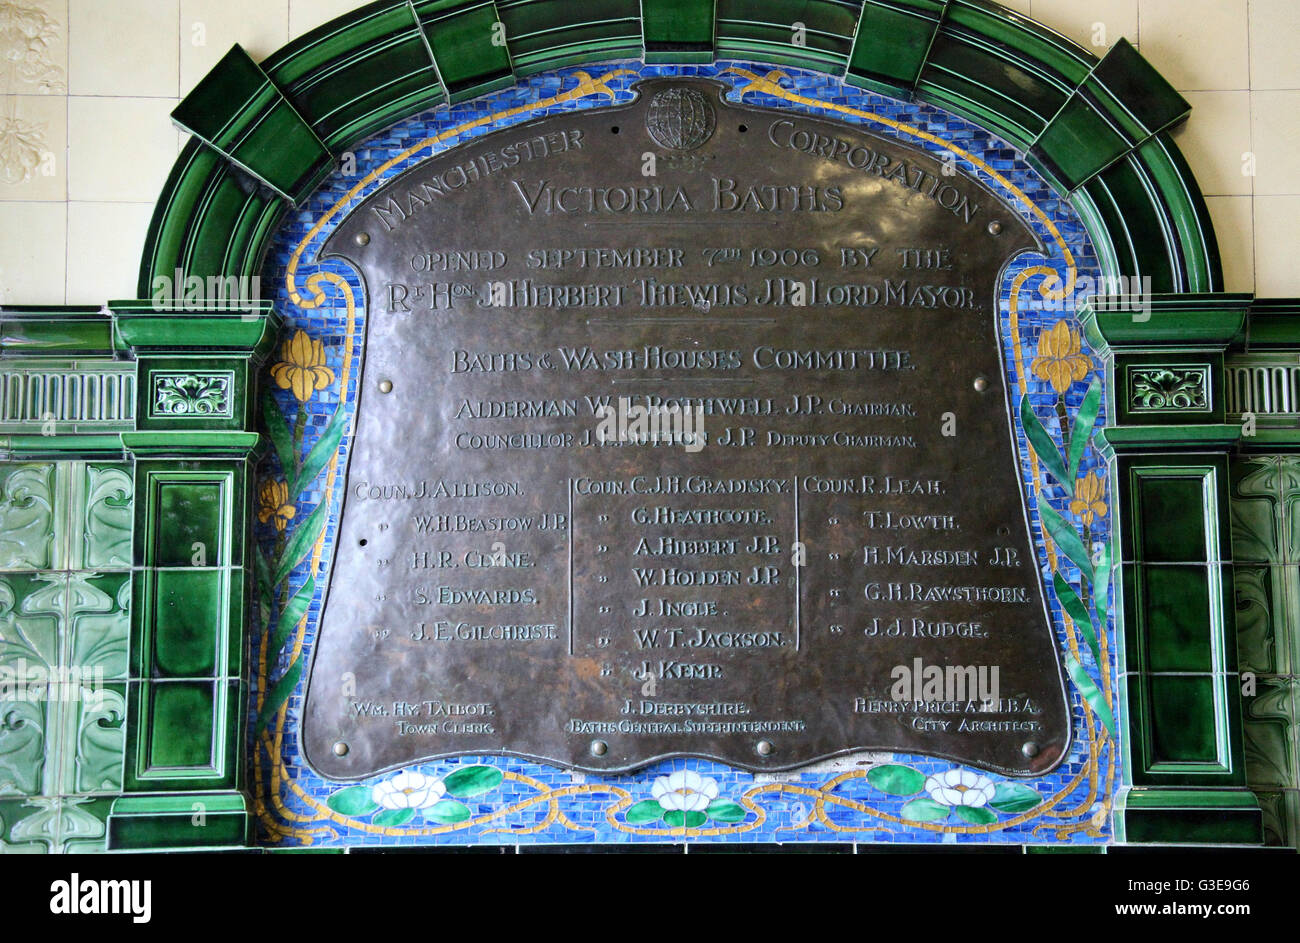 Plaque at Victoria Baths in Manchester - Stock Image